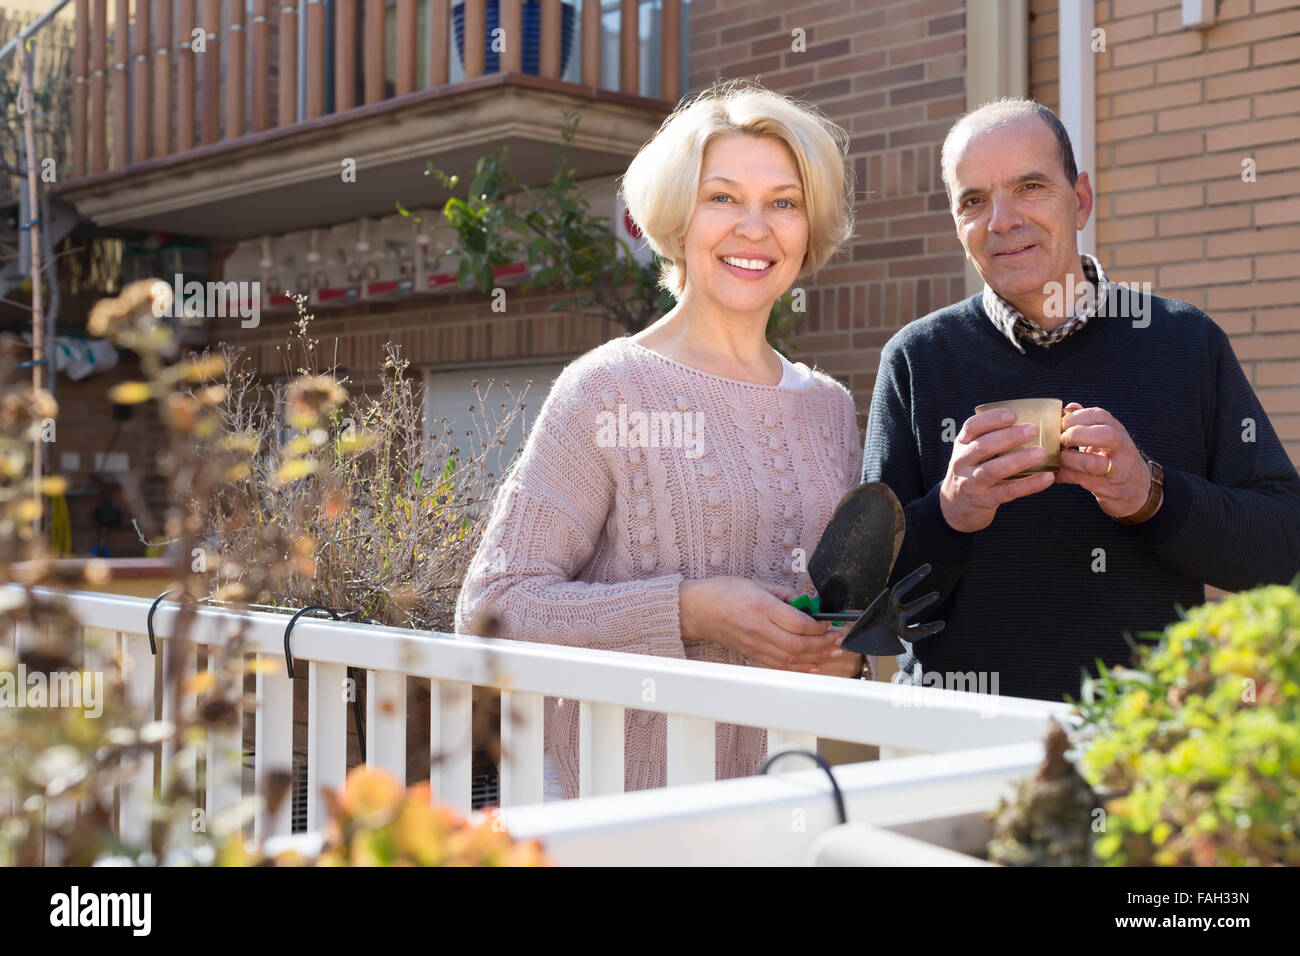 Happy smiling aged woman with horticultural sundry and aged man drinking tea in patio. Focus on woman Stock Photo